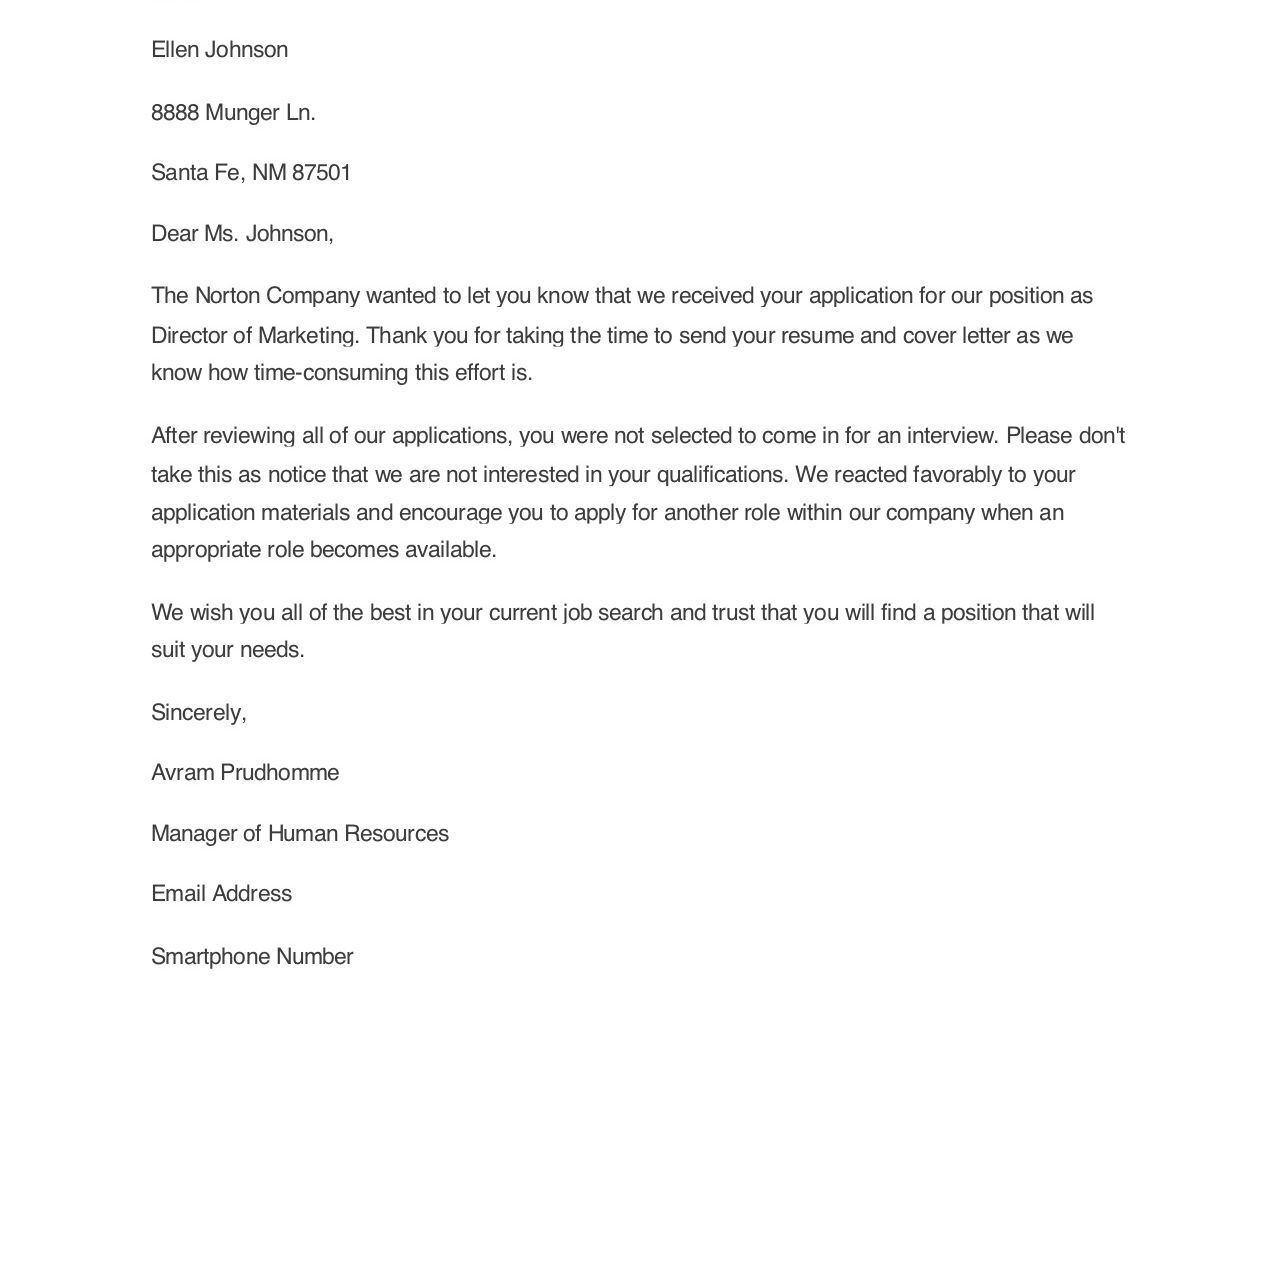 Sample Rejection Letters for Unsuccessful Applicants